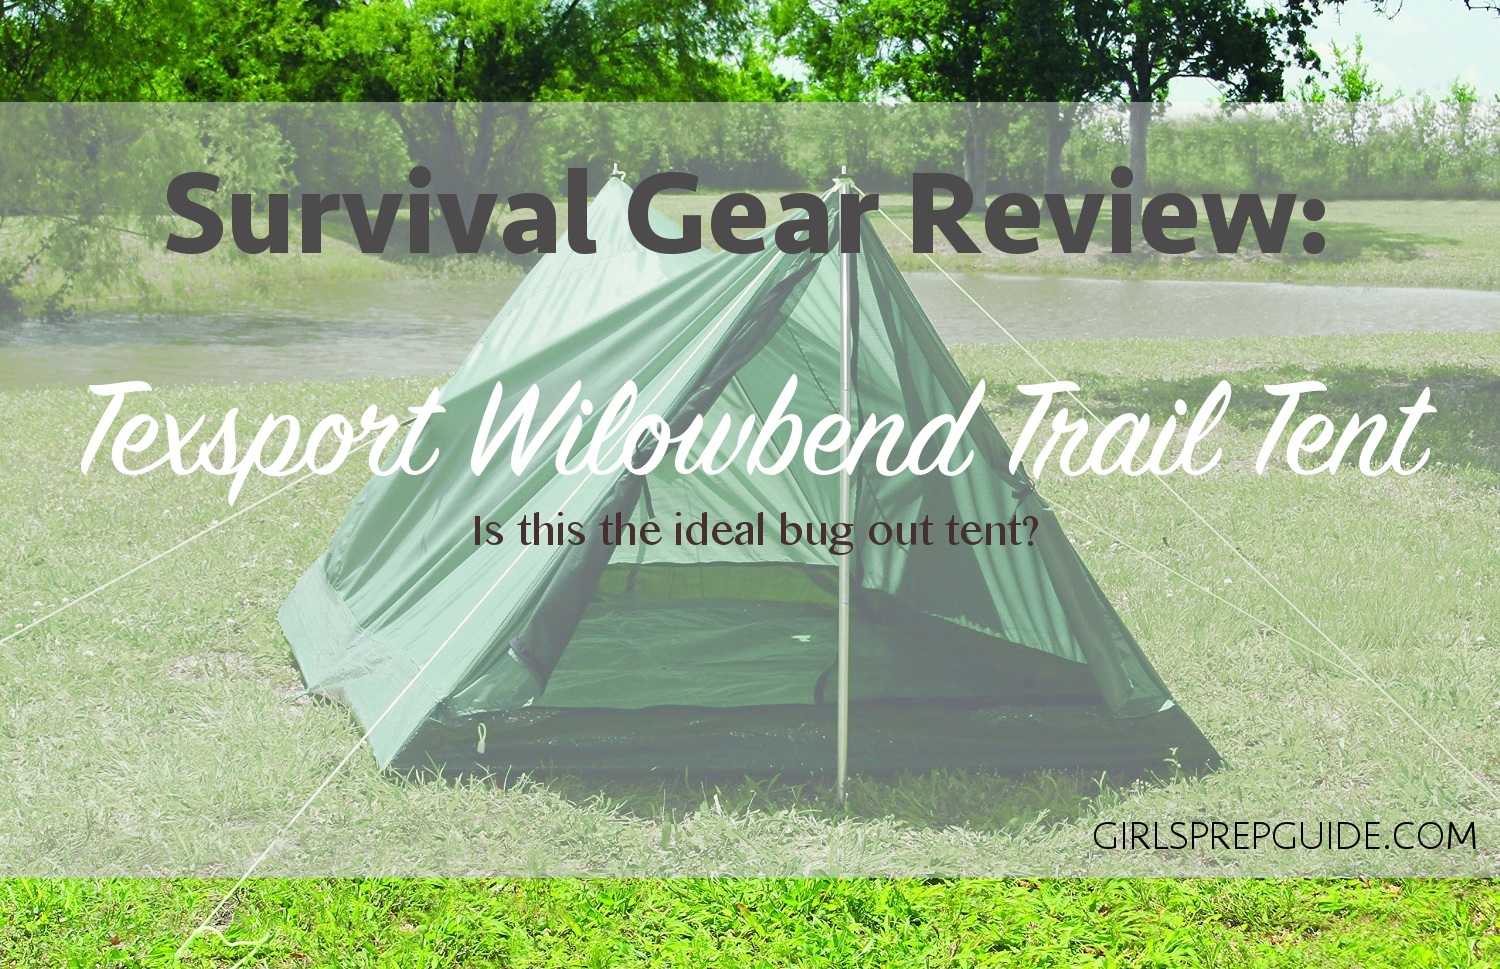 Survival Gear Review Texsport Willowbend Trail Tent & 7 Reasons to Switch from Tent to Hammock Camping - A Girlu0027s Prep Guide